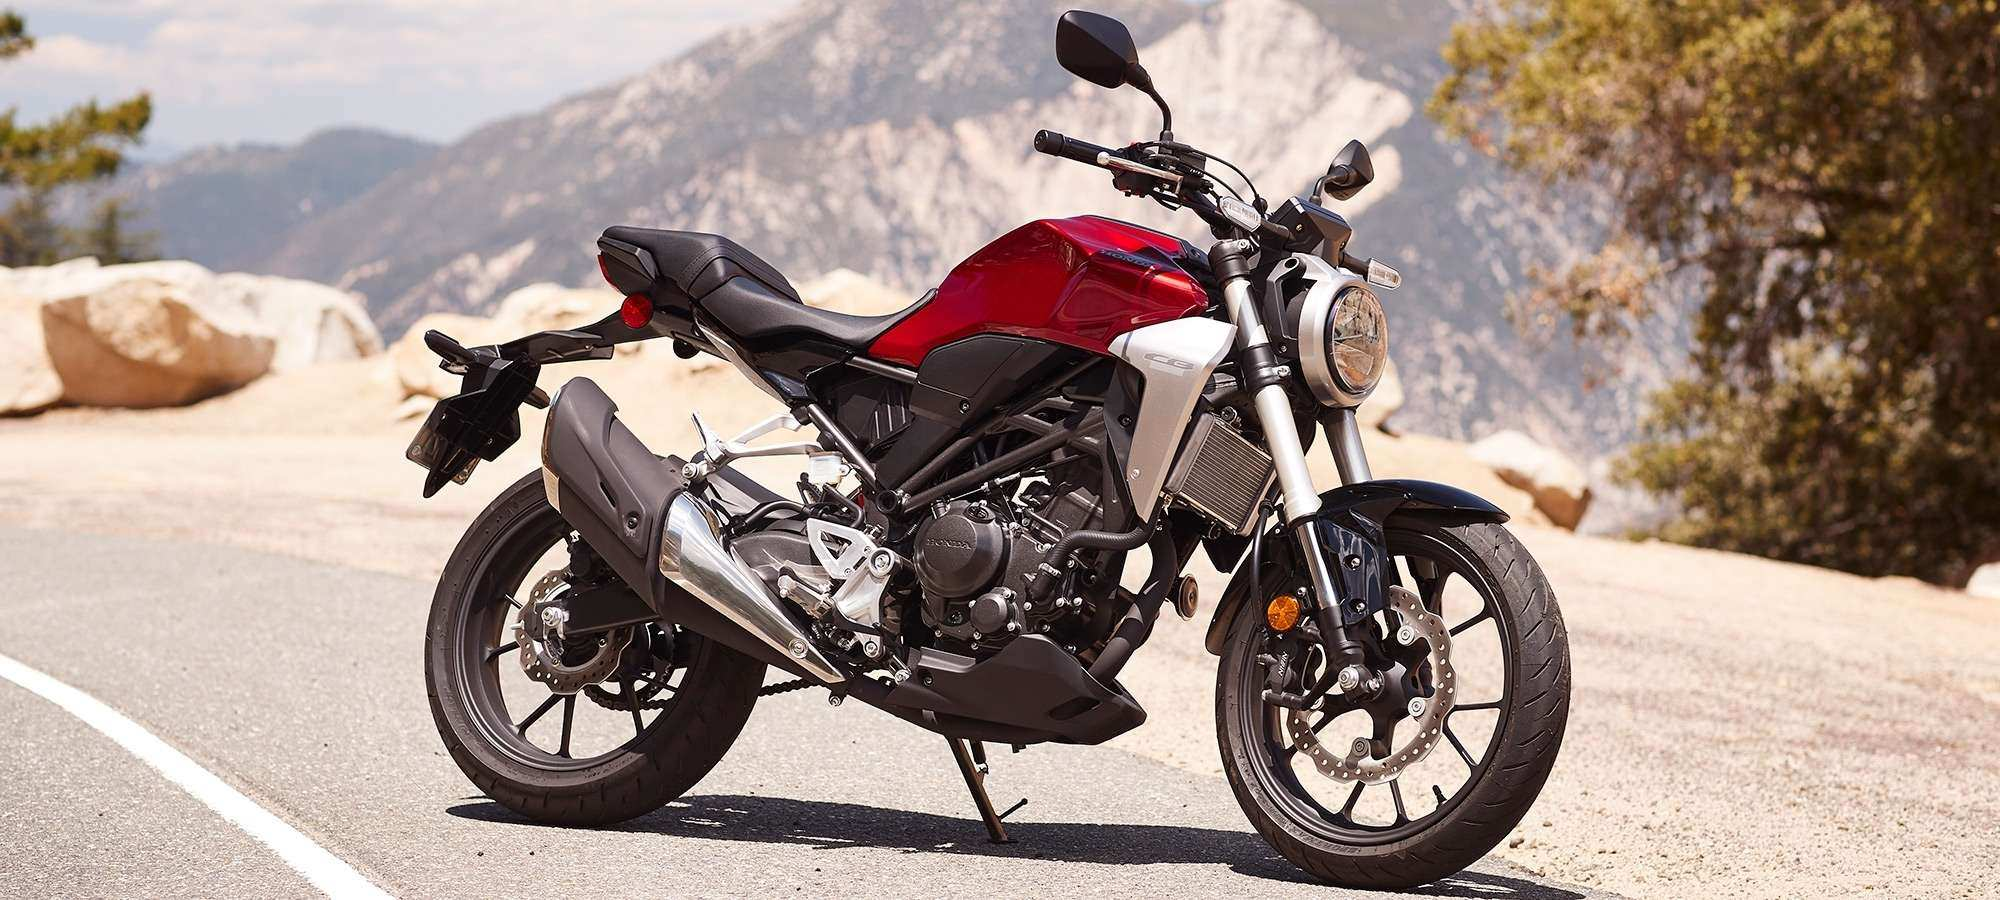 16 All New 2019 Honda 300R Research New with 2019 Honda 300R